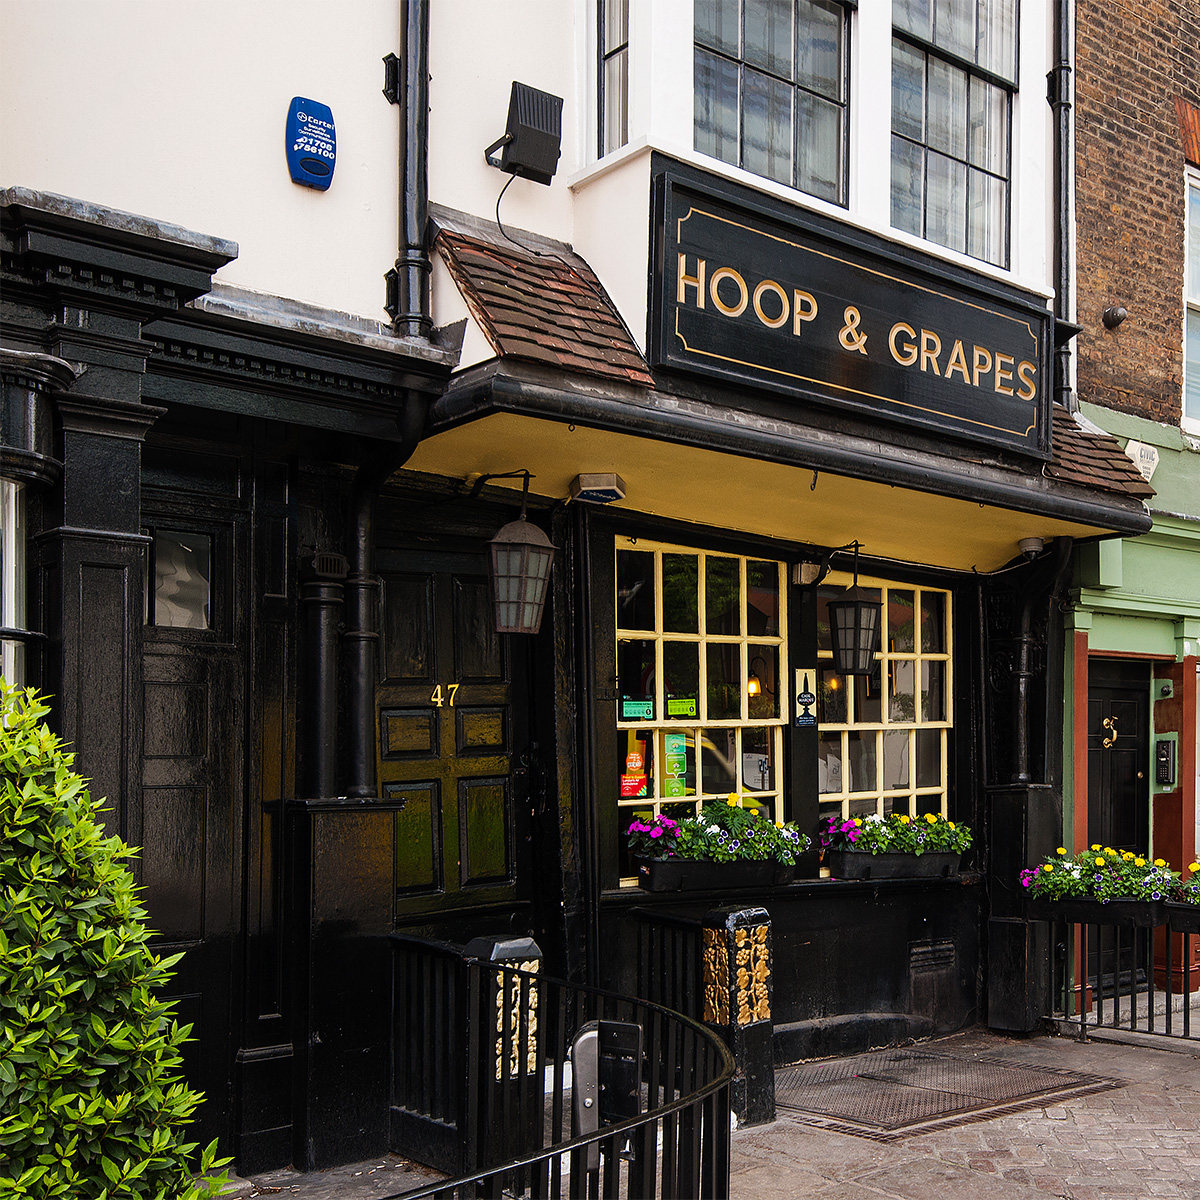 The Hoop and Grapes